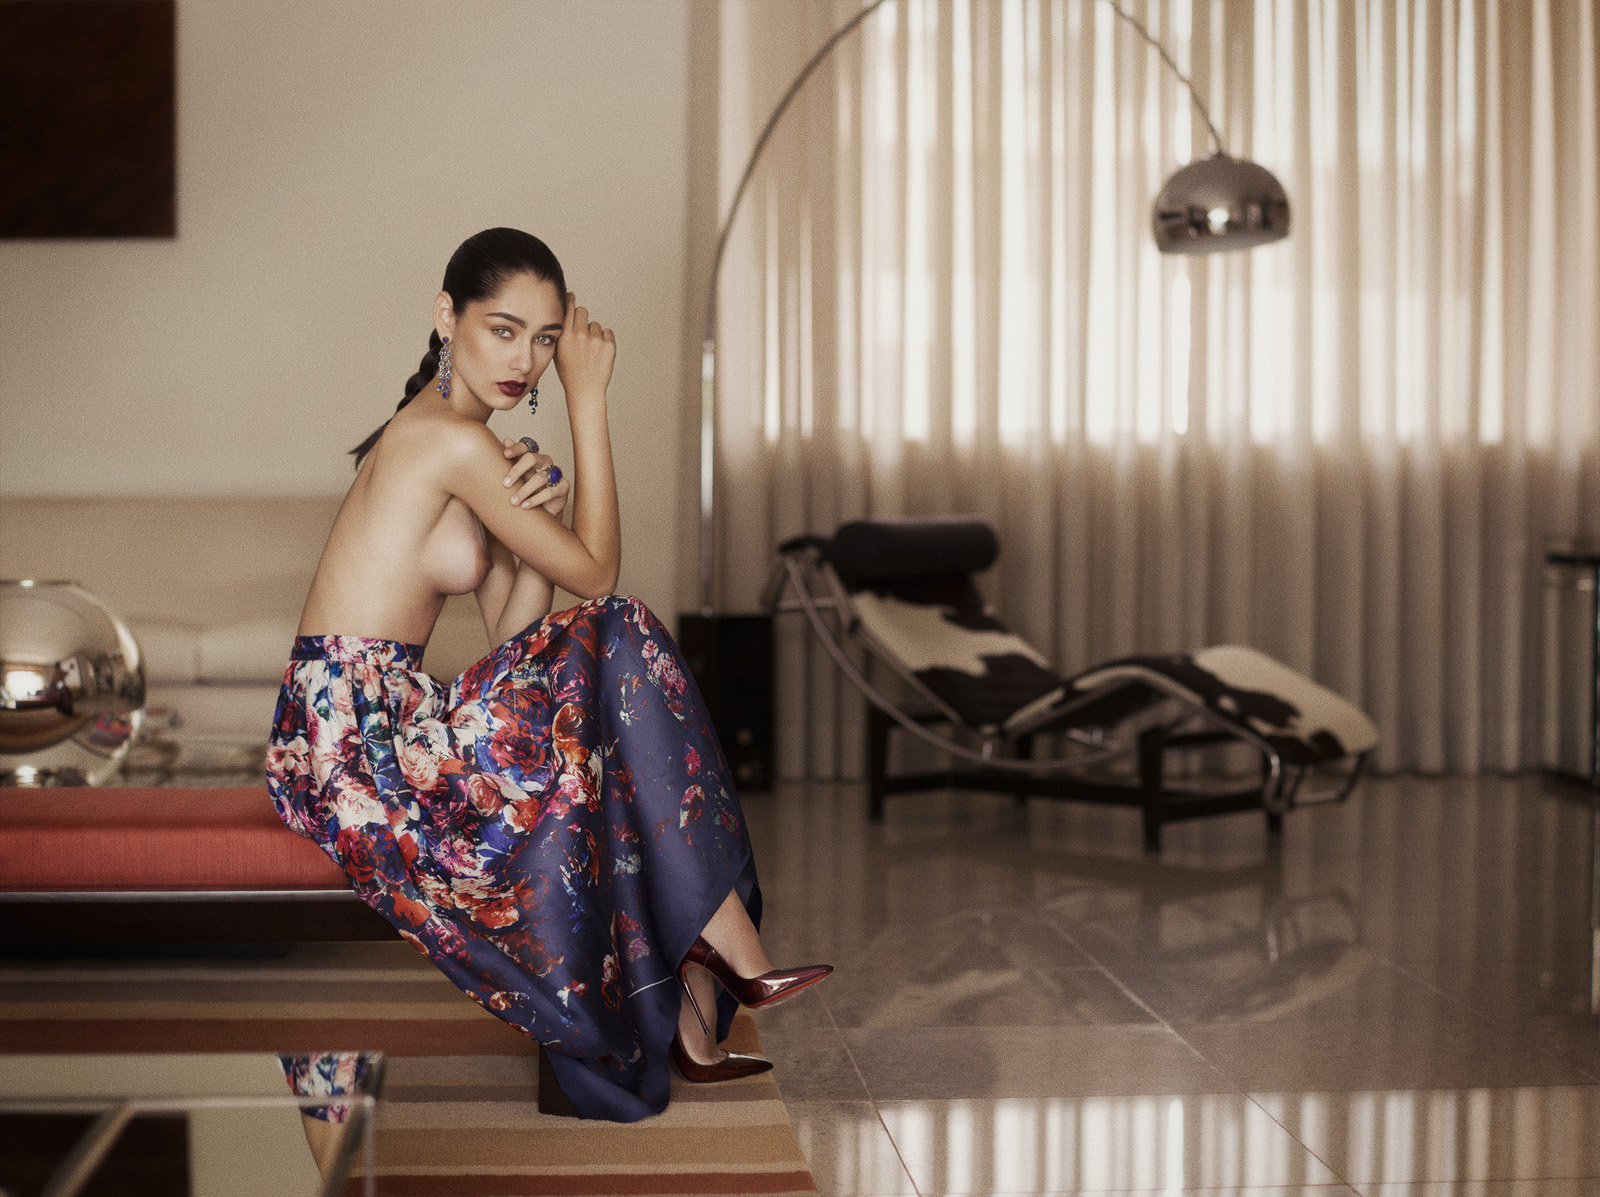 Andre Schneider fashion photographer